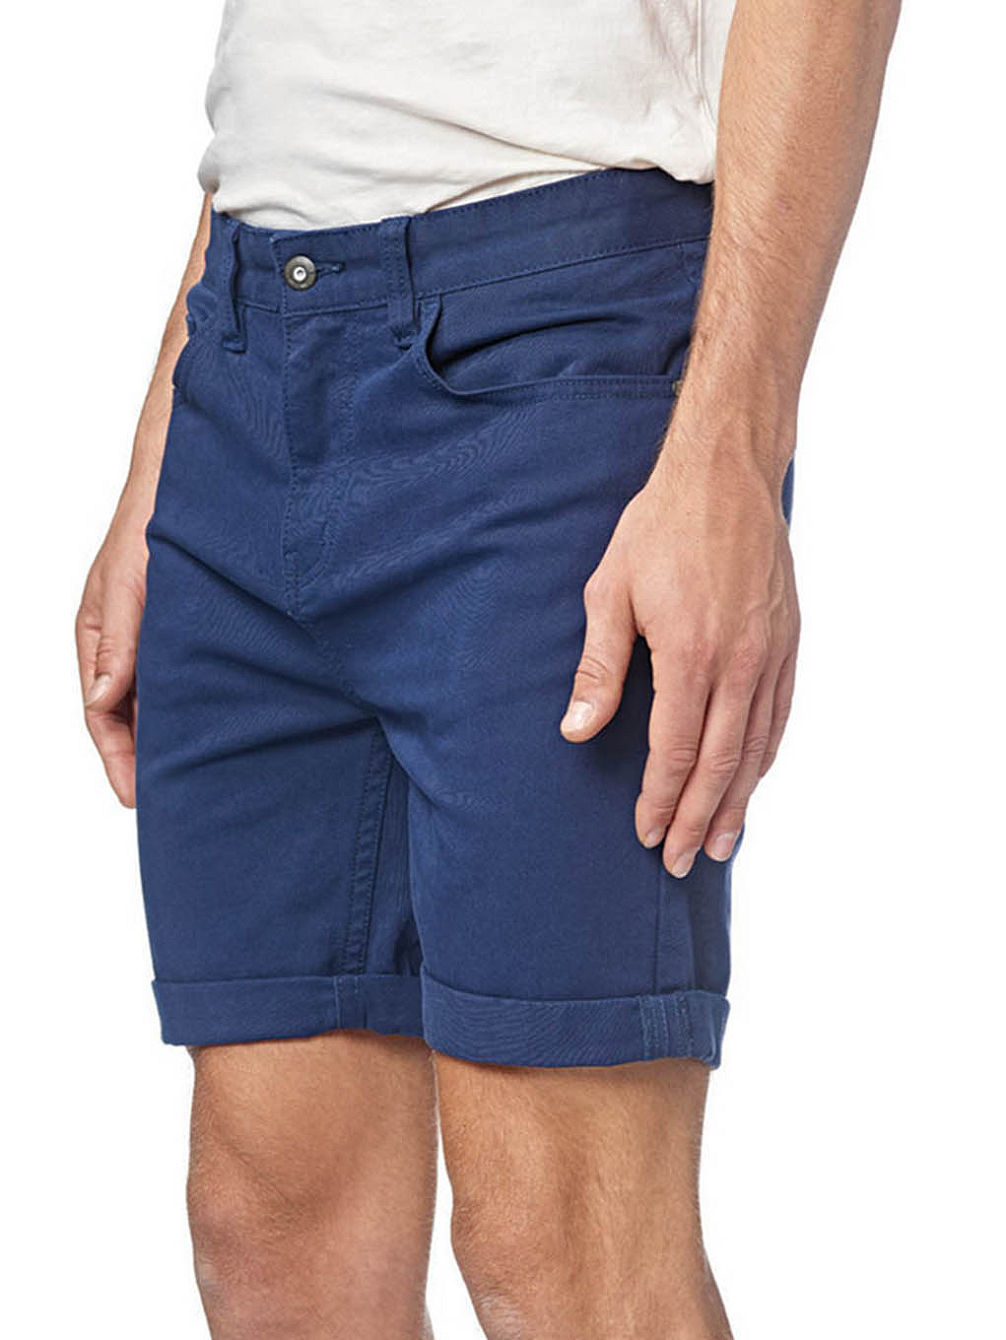 Goodstock Denim Walk Pantalones cortos